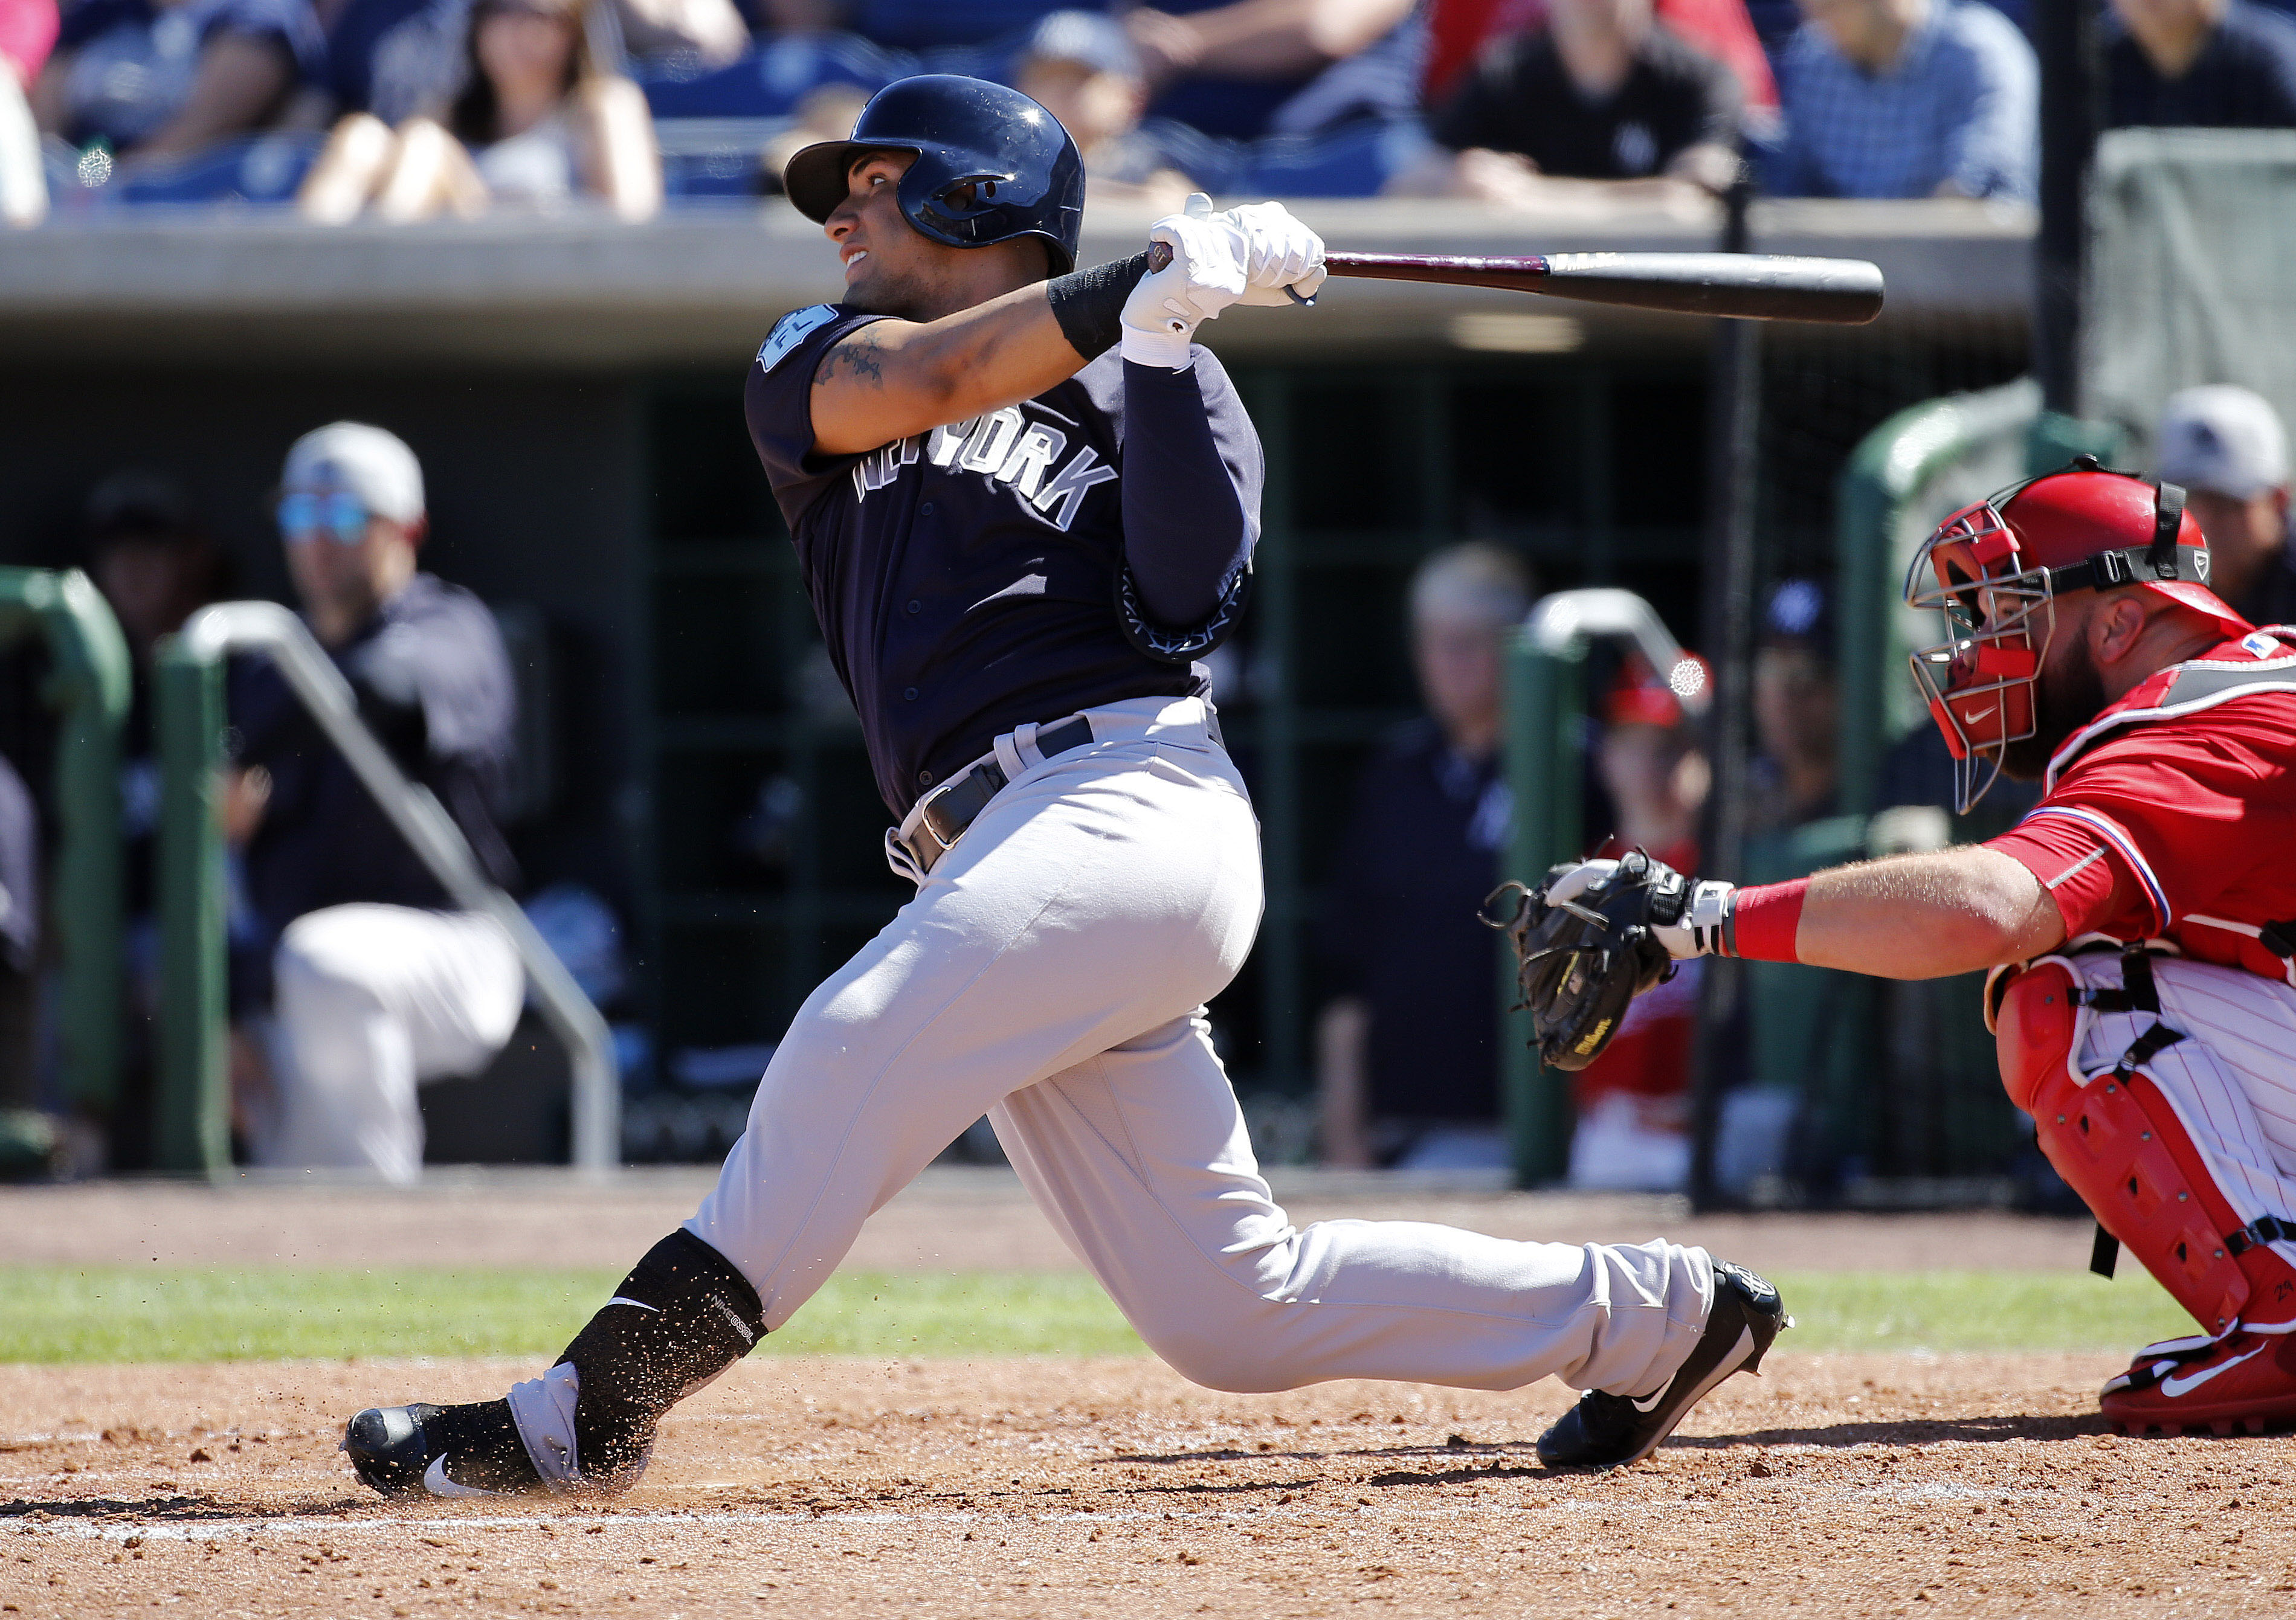 New York Yankees Scouting Report on SS Gleyber Torres